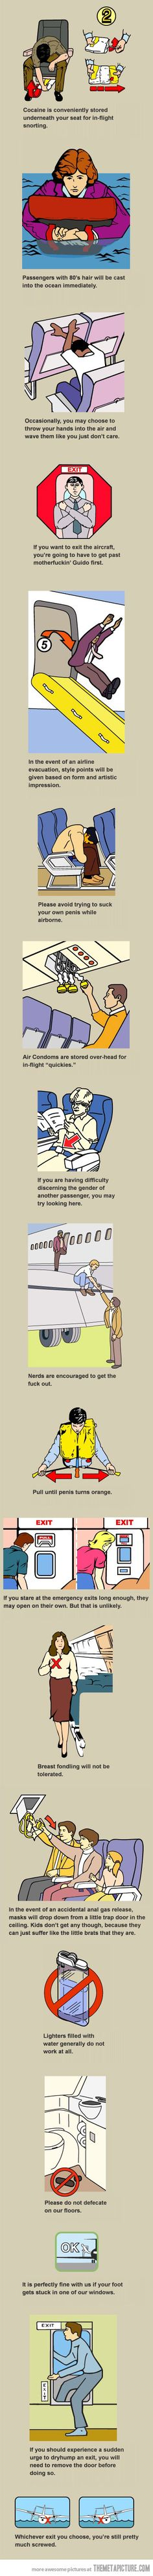 funny-airline-safety-guidelines